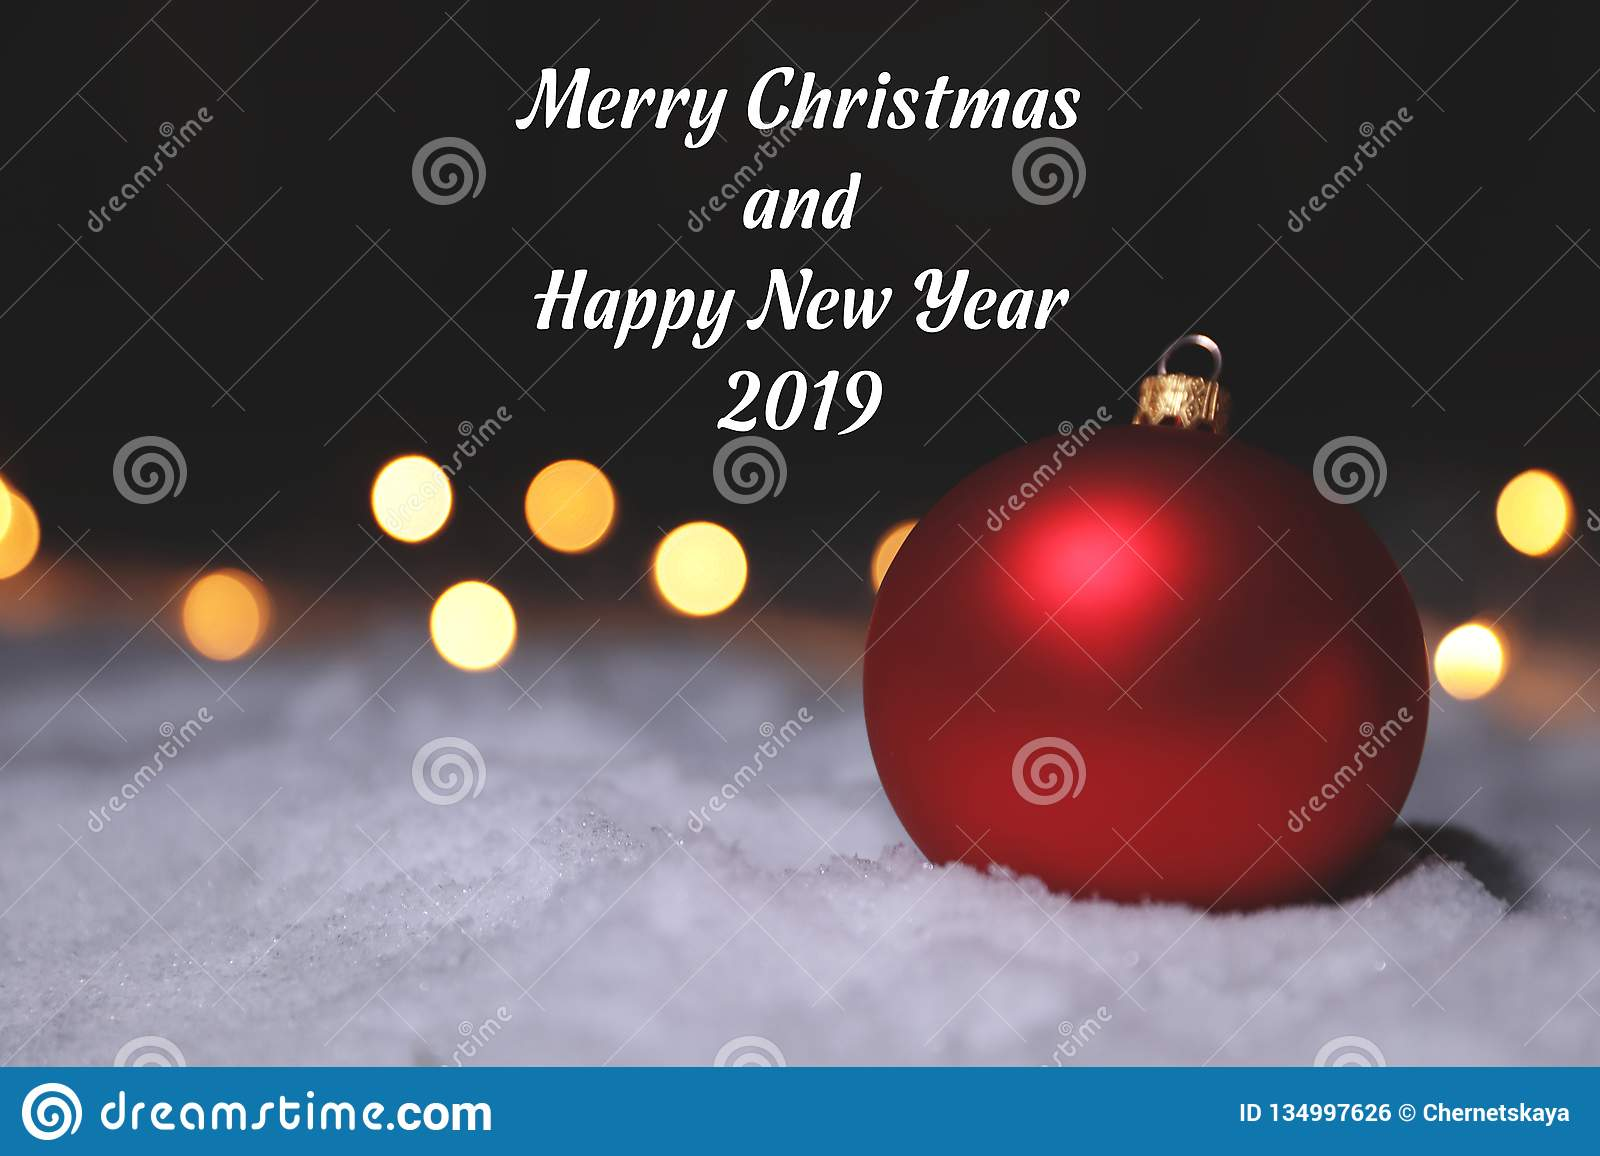 Christmas ball on snow and greeting message against blurred background.